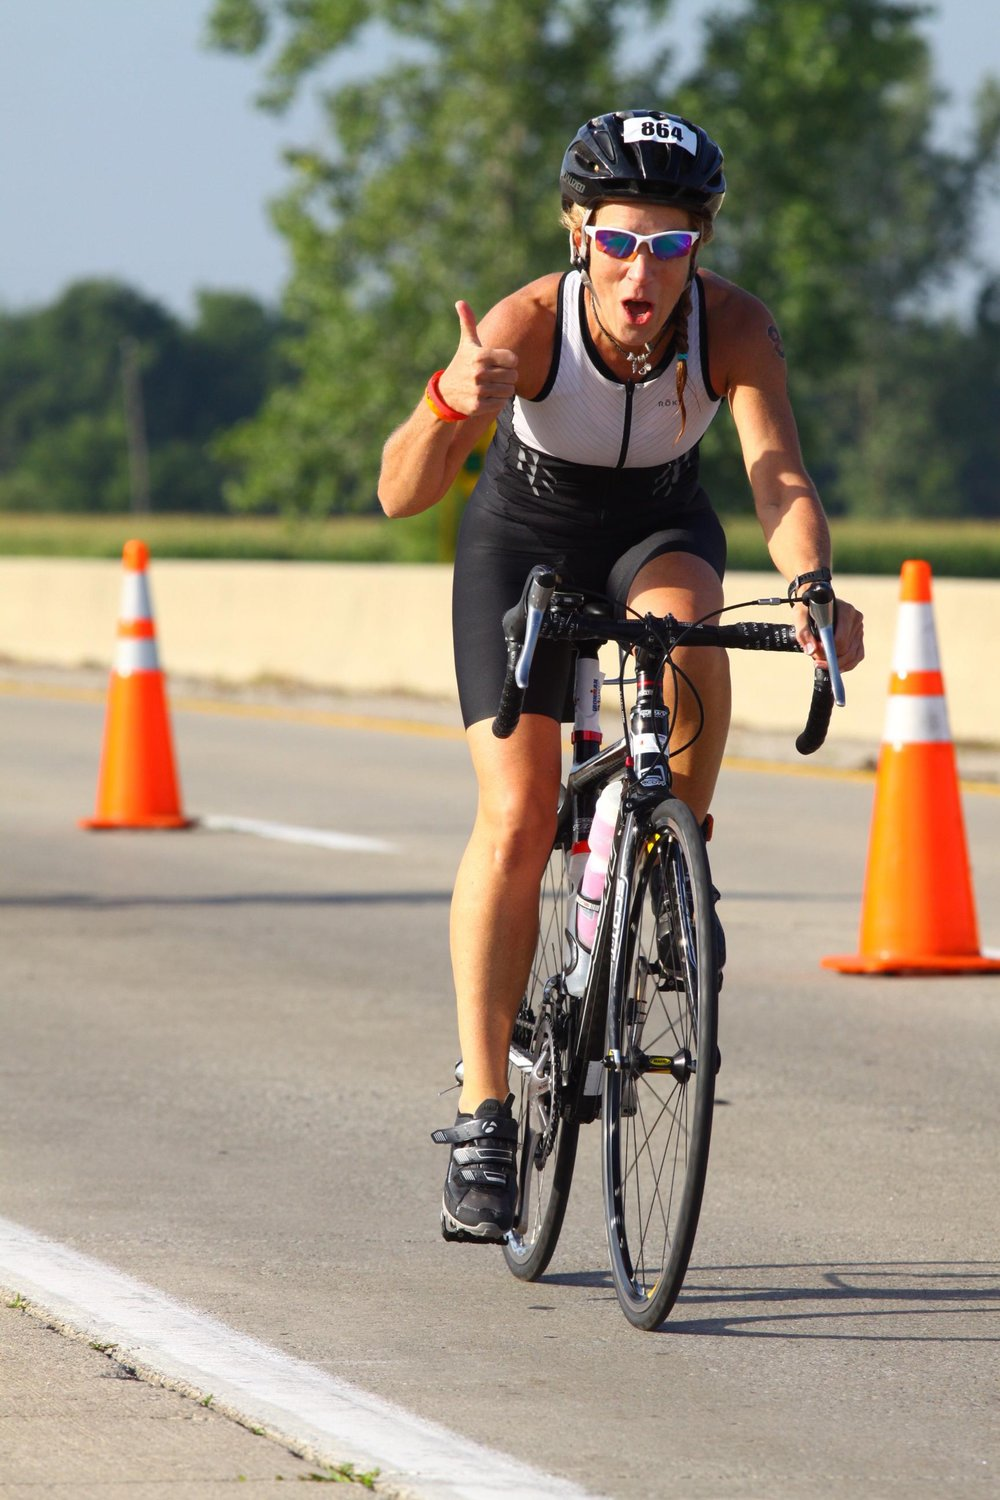 Ironman 70.3 - Ohio. Coach Amy has fun with the professional photographers on the bike course.